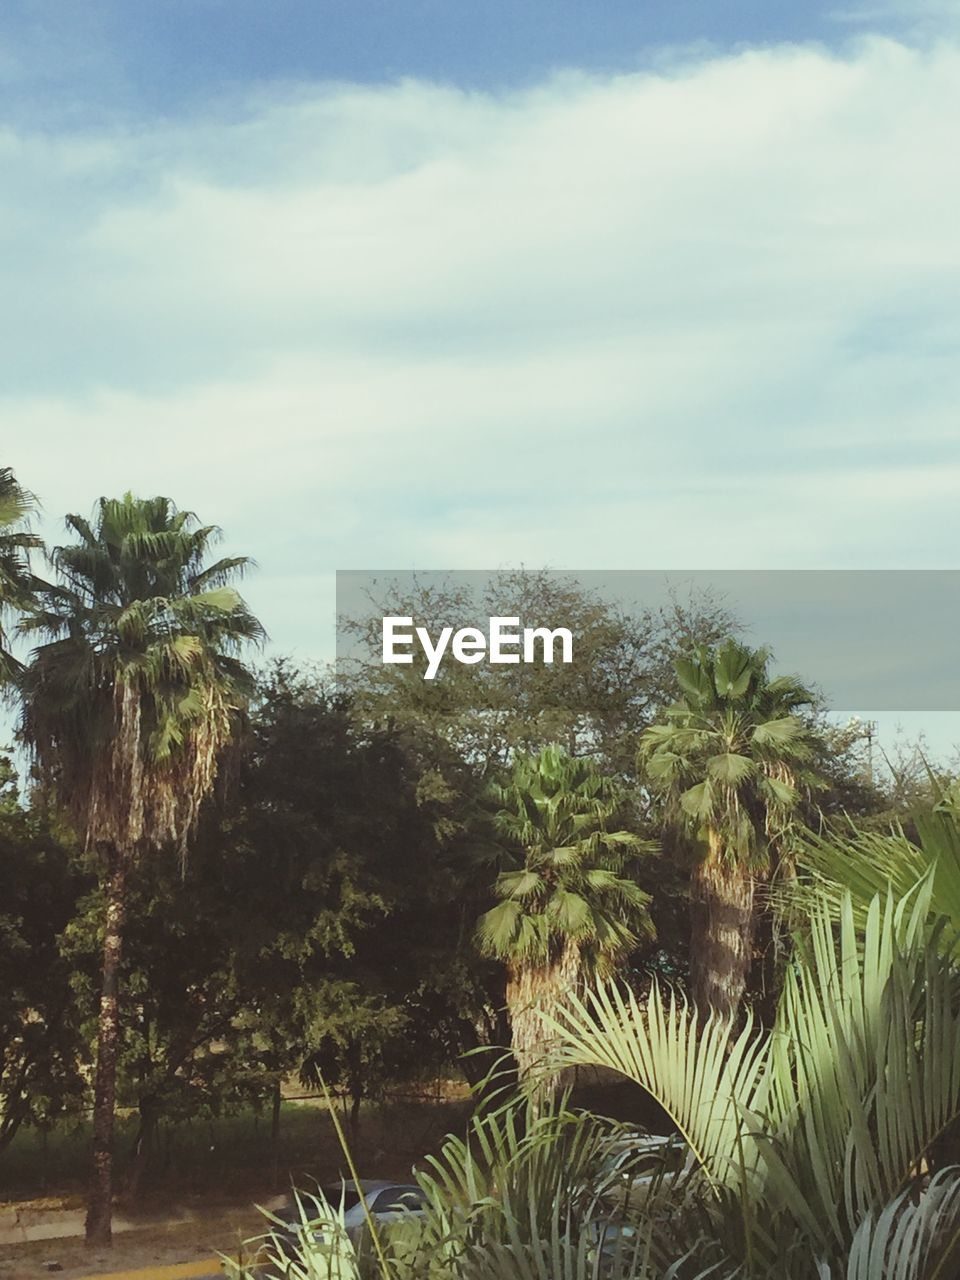 plant, sky, tree, growth, nature, beauty in nature, tranquility, cloud - sky, palm tree, tropical climate, day, tranquil scene, no people, scenics - nature, land, outdoors, environment, green color, water, non-urban scene, palm leaf